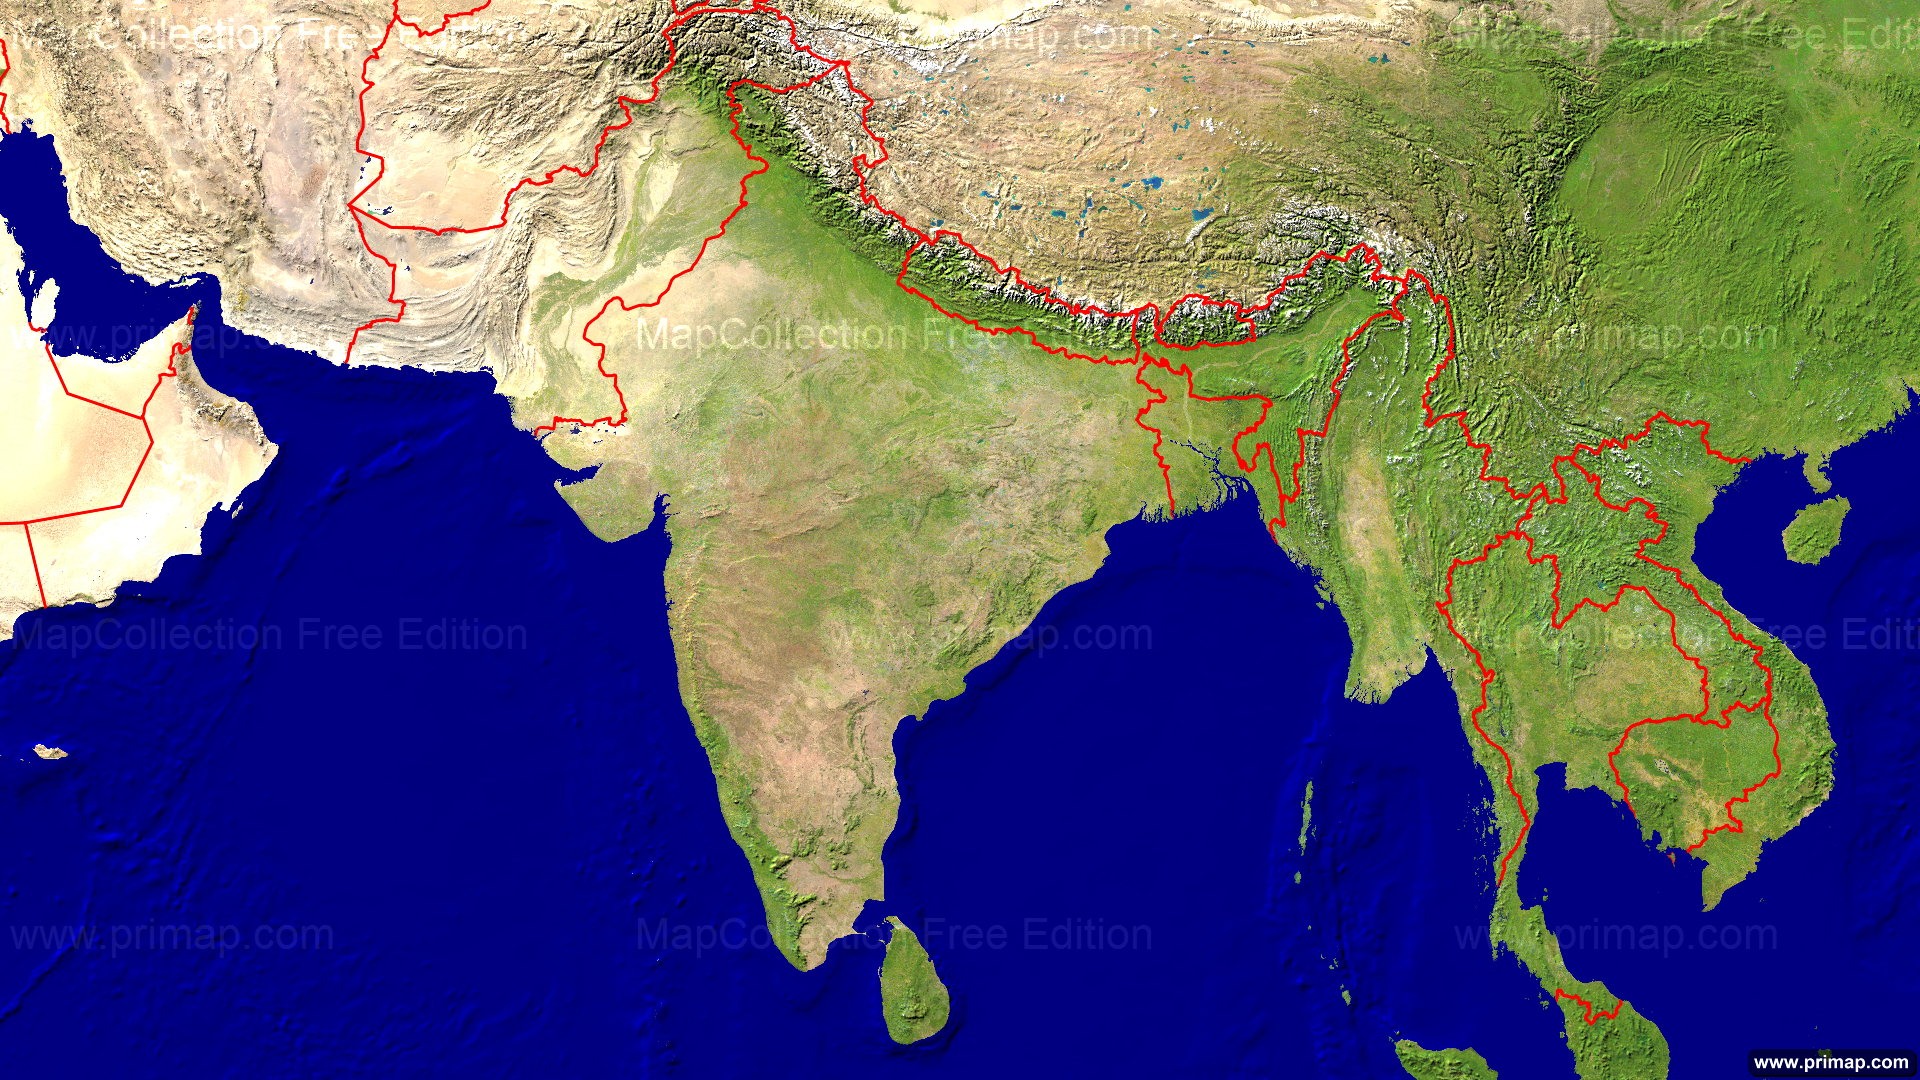 Download Hd Indian Map Wallpaper Gallery